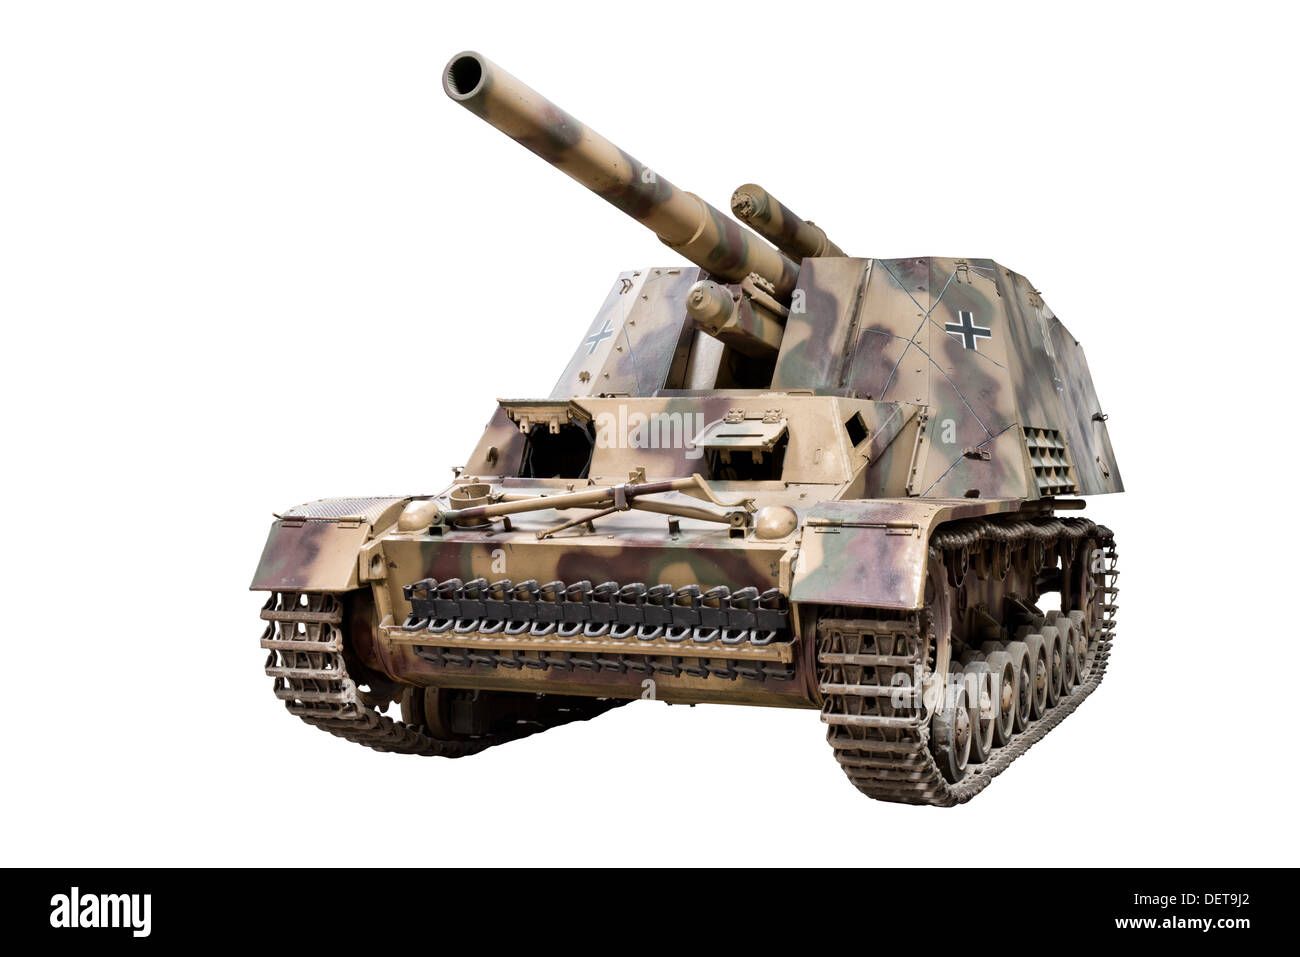 A cut out of a Hummel( Sd.Kfz.165) 150mm self propelled heavy field Howitzer. Used by Nazi German forces during WW2 - Stock Image